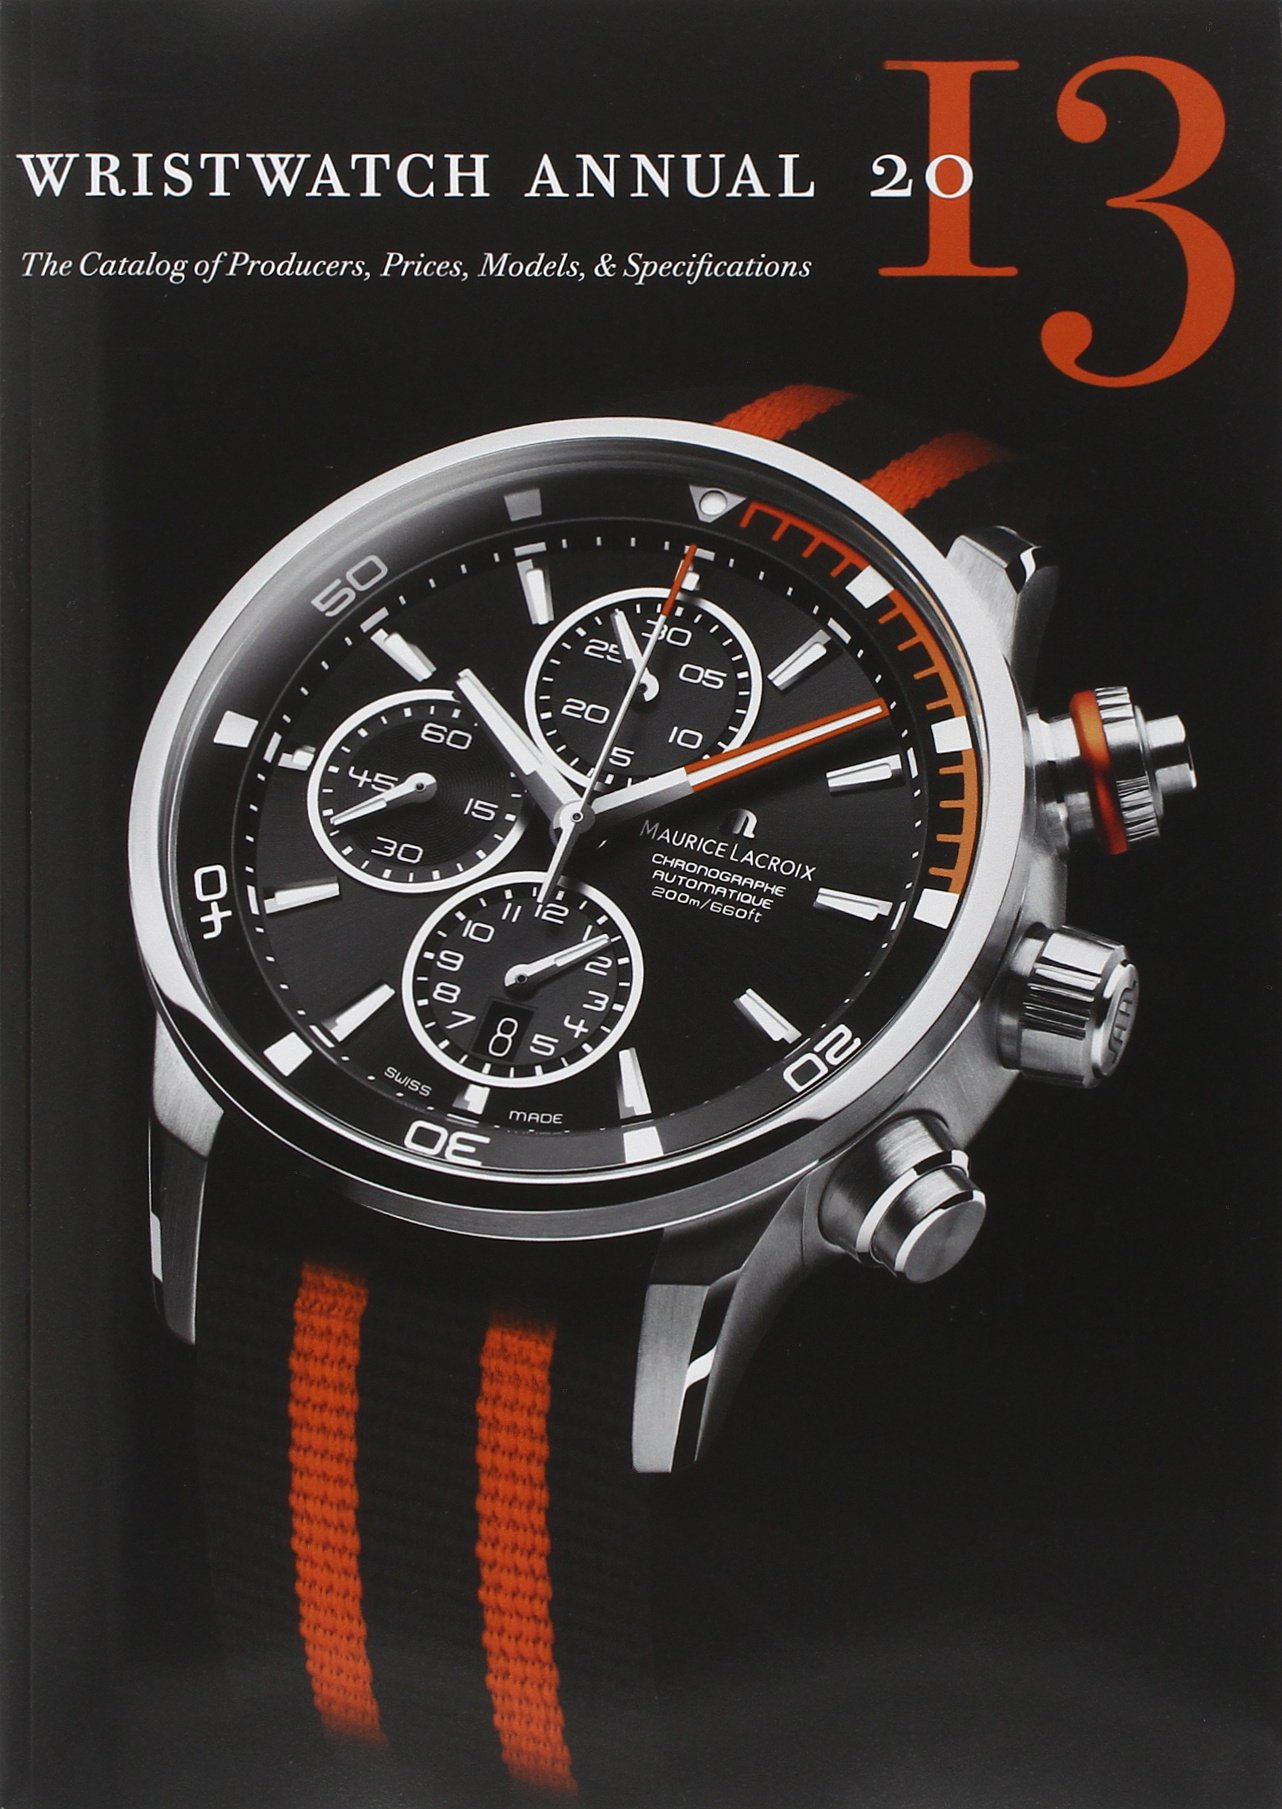 Wristwatch Annual 2013 Producers Specifications product image